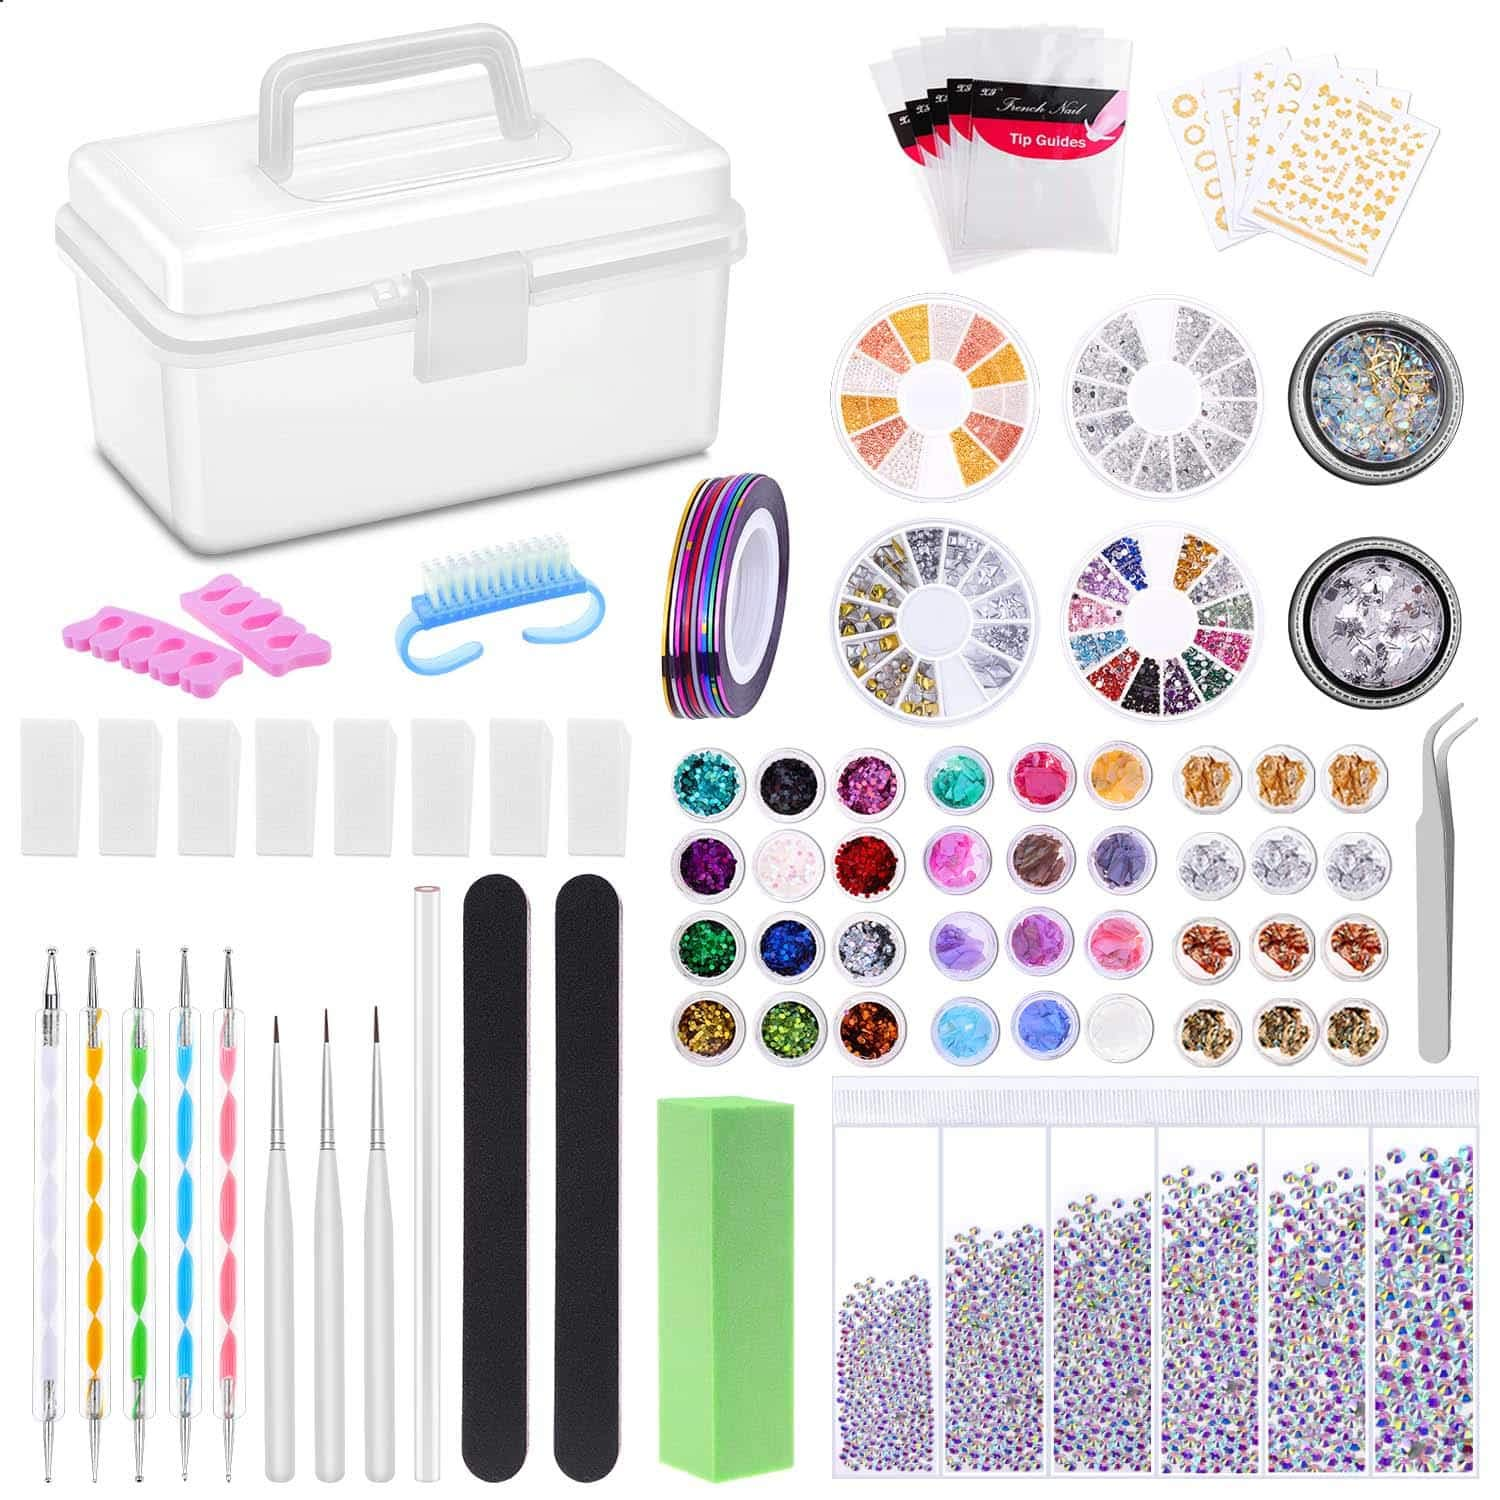 Nail Art Kit Paxcoo Tools Design Supplies Tampa Mall Super beauty product restock quality top Inc